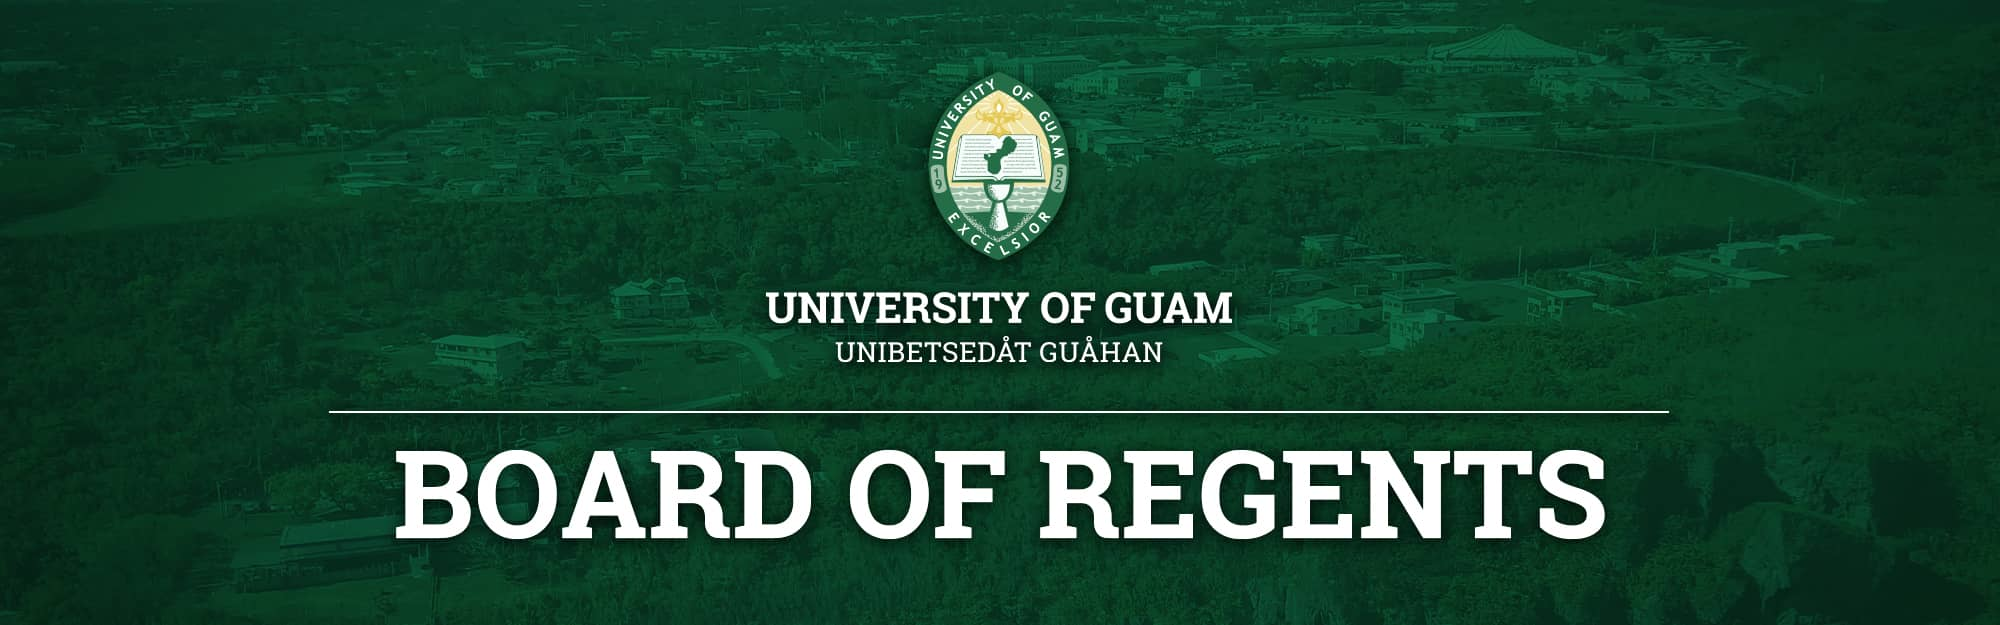 Banner image for the Board of Regents